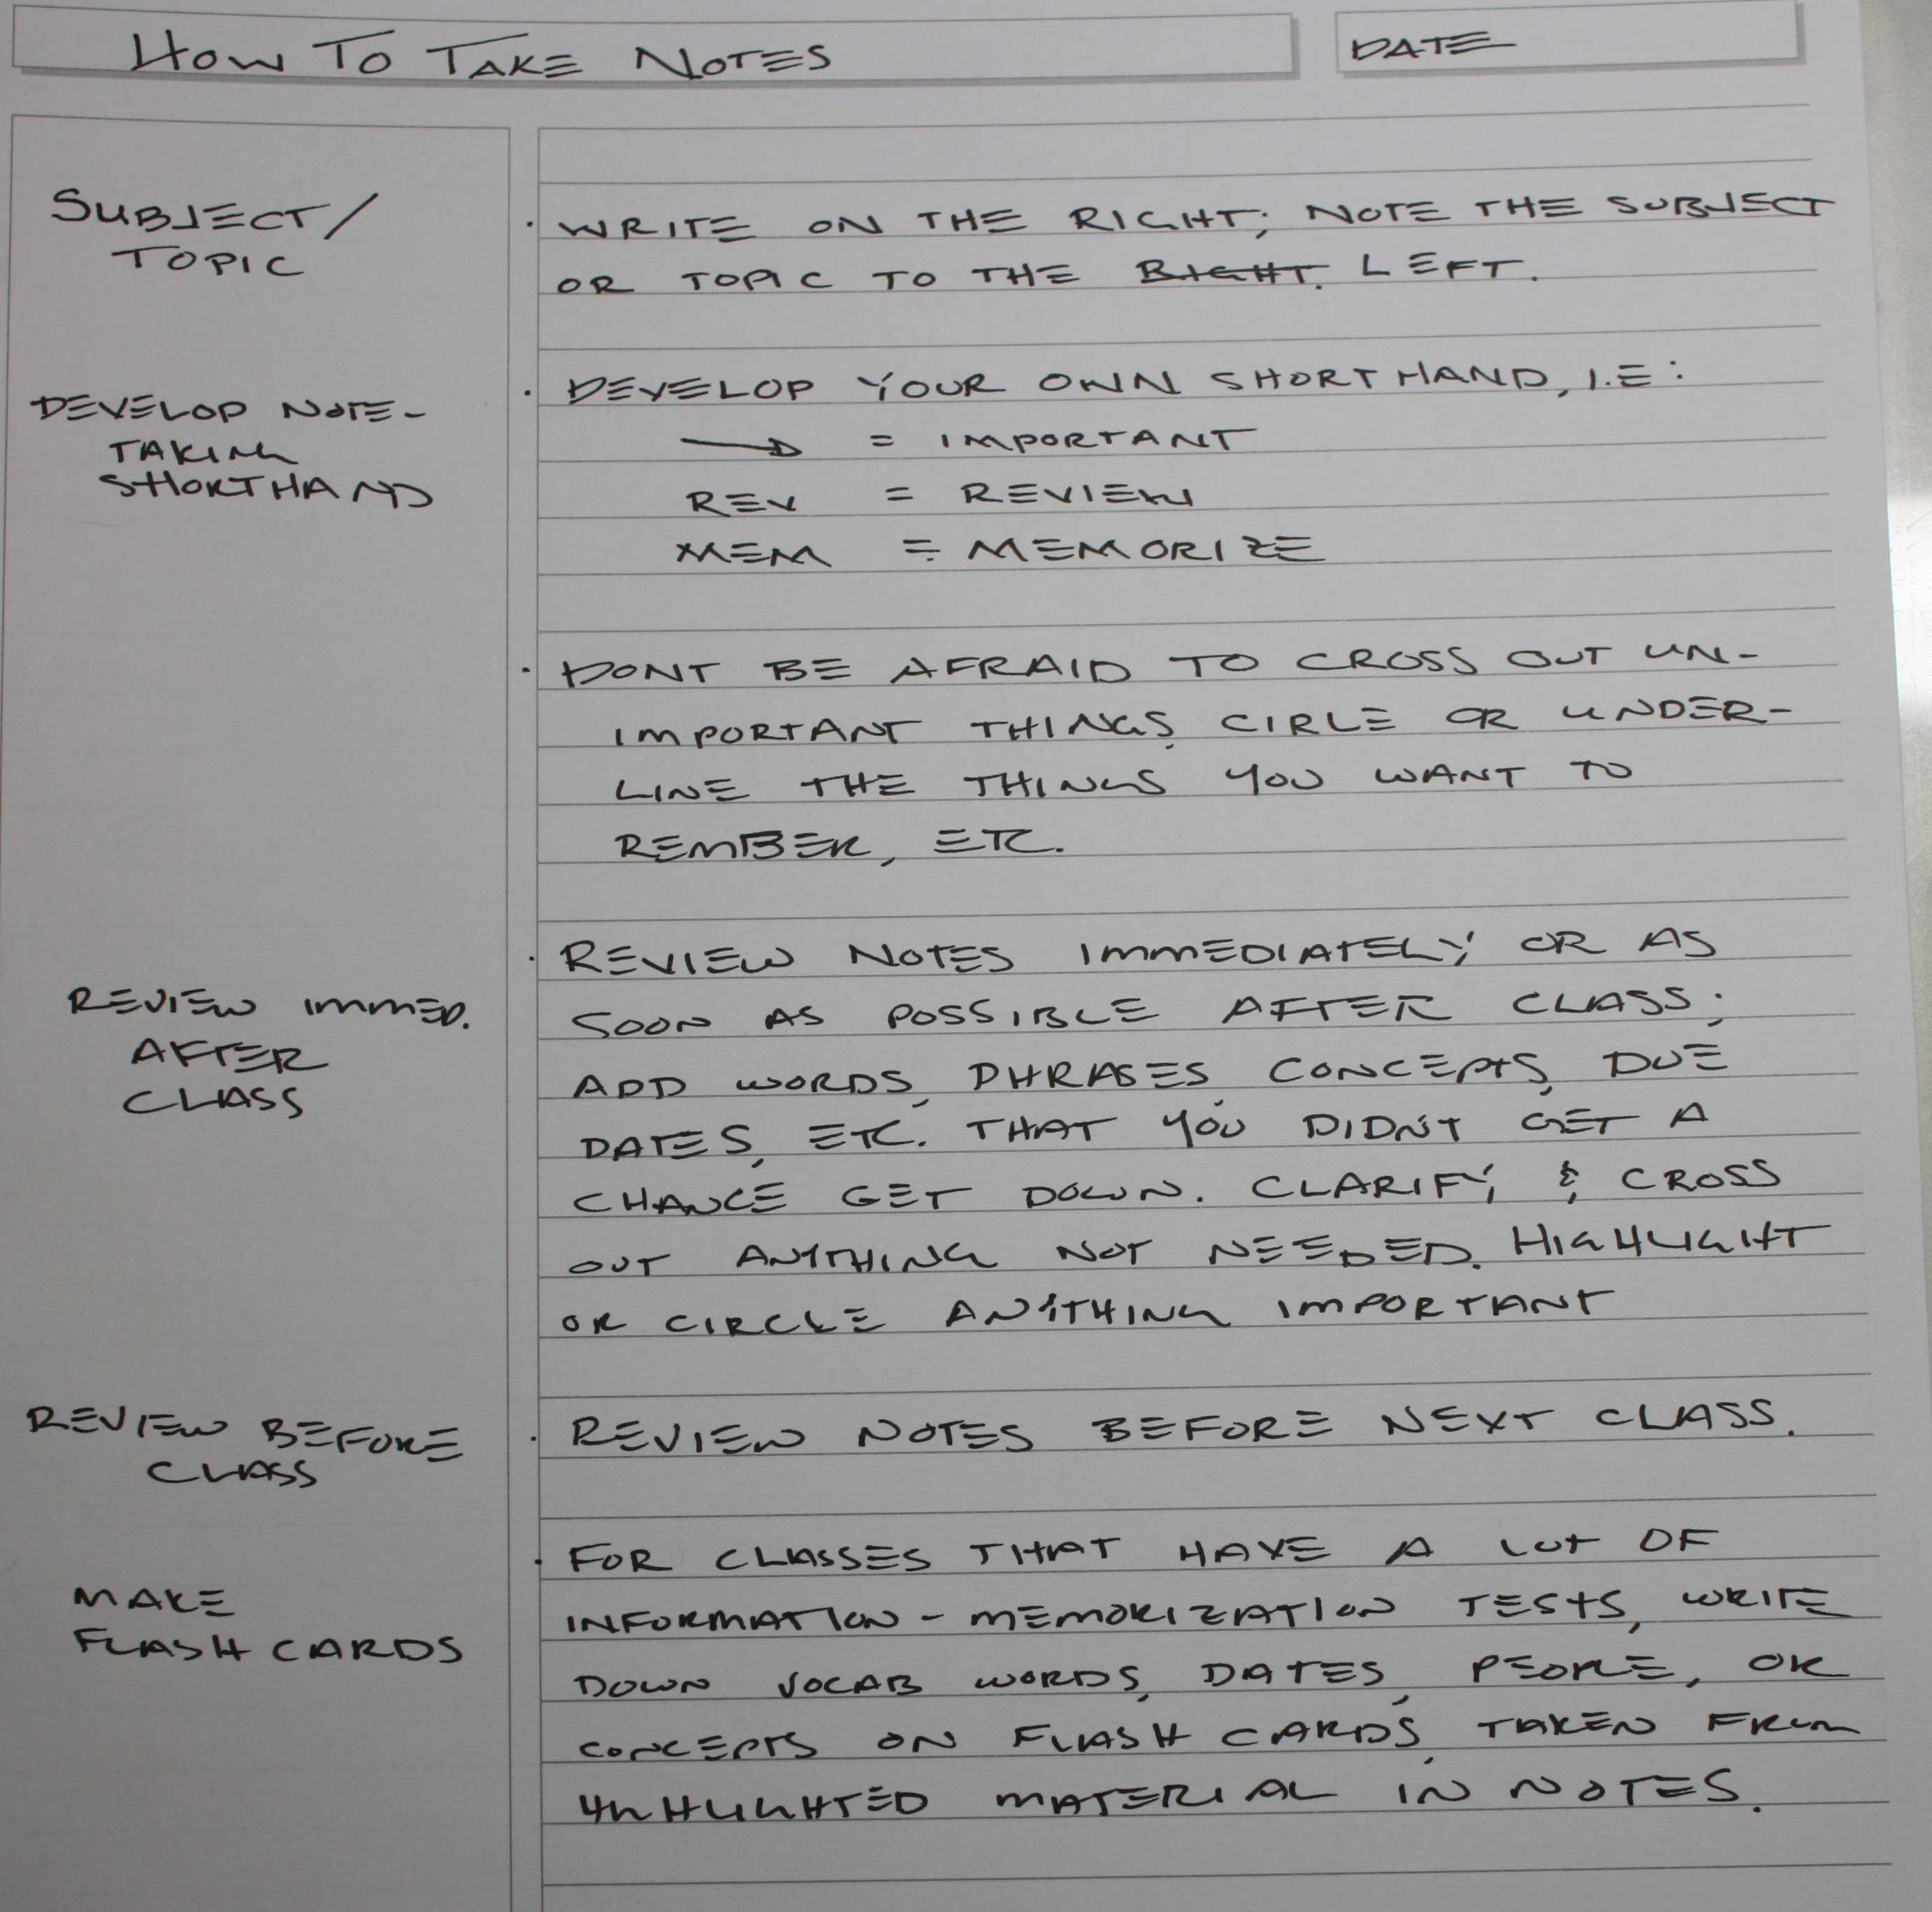 organization quest calendars to do lists address books notes